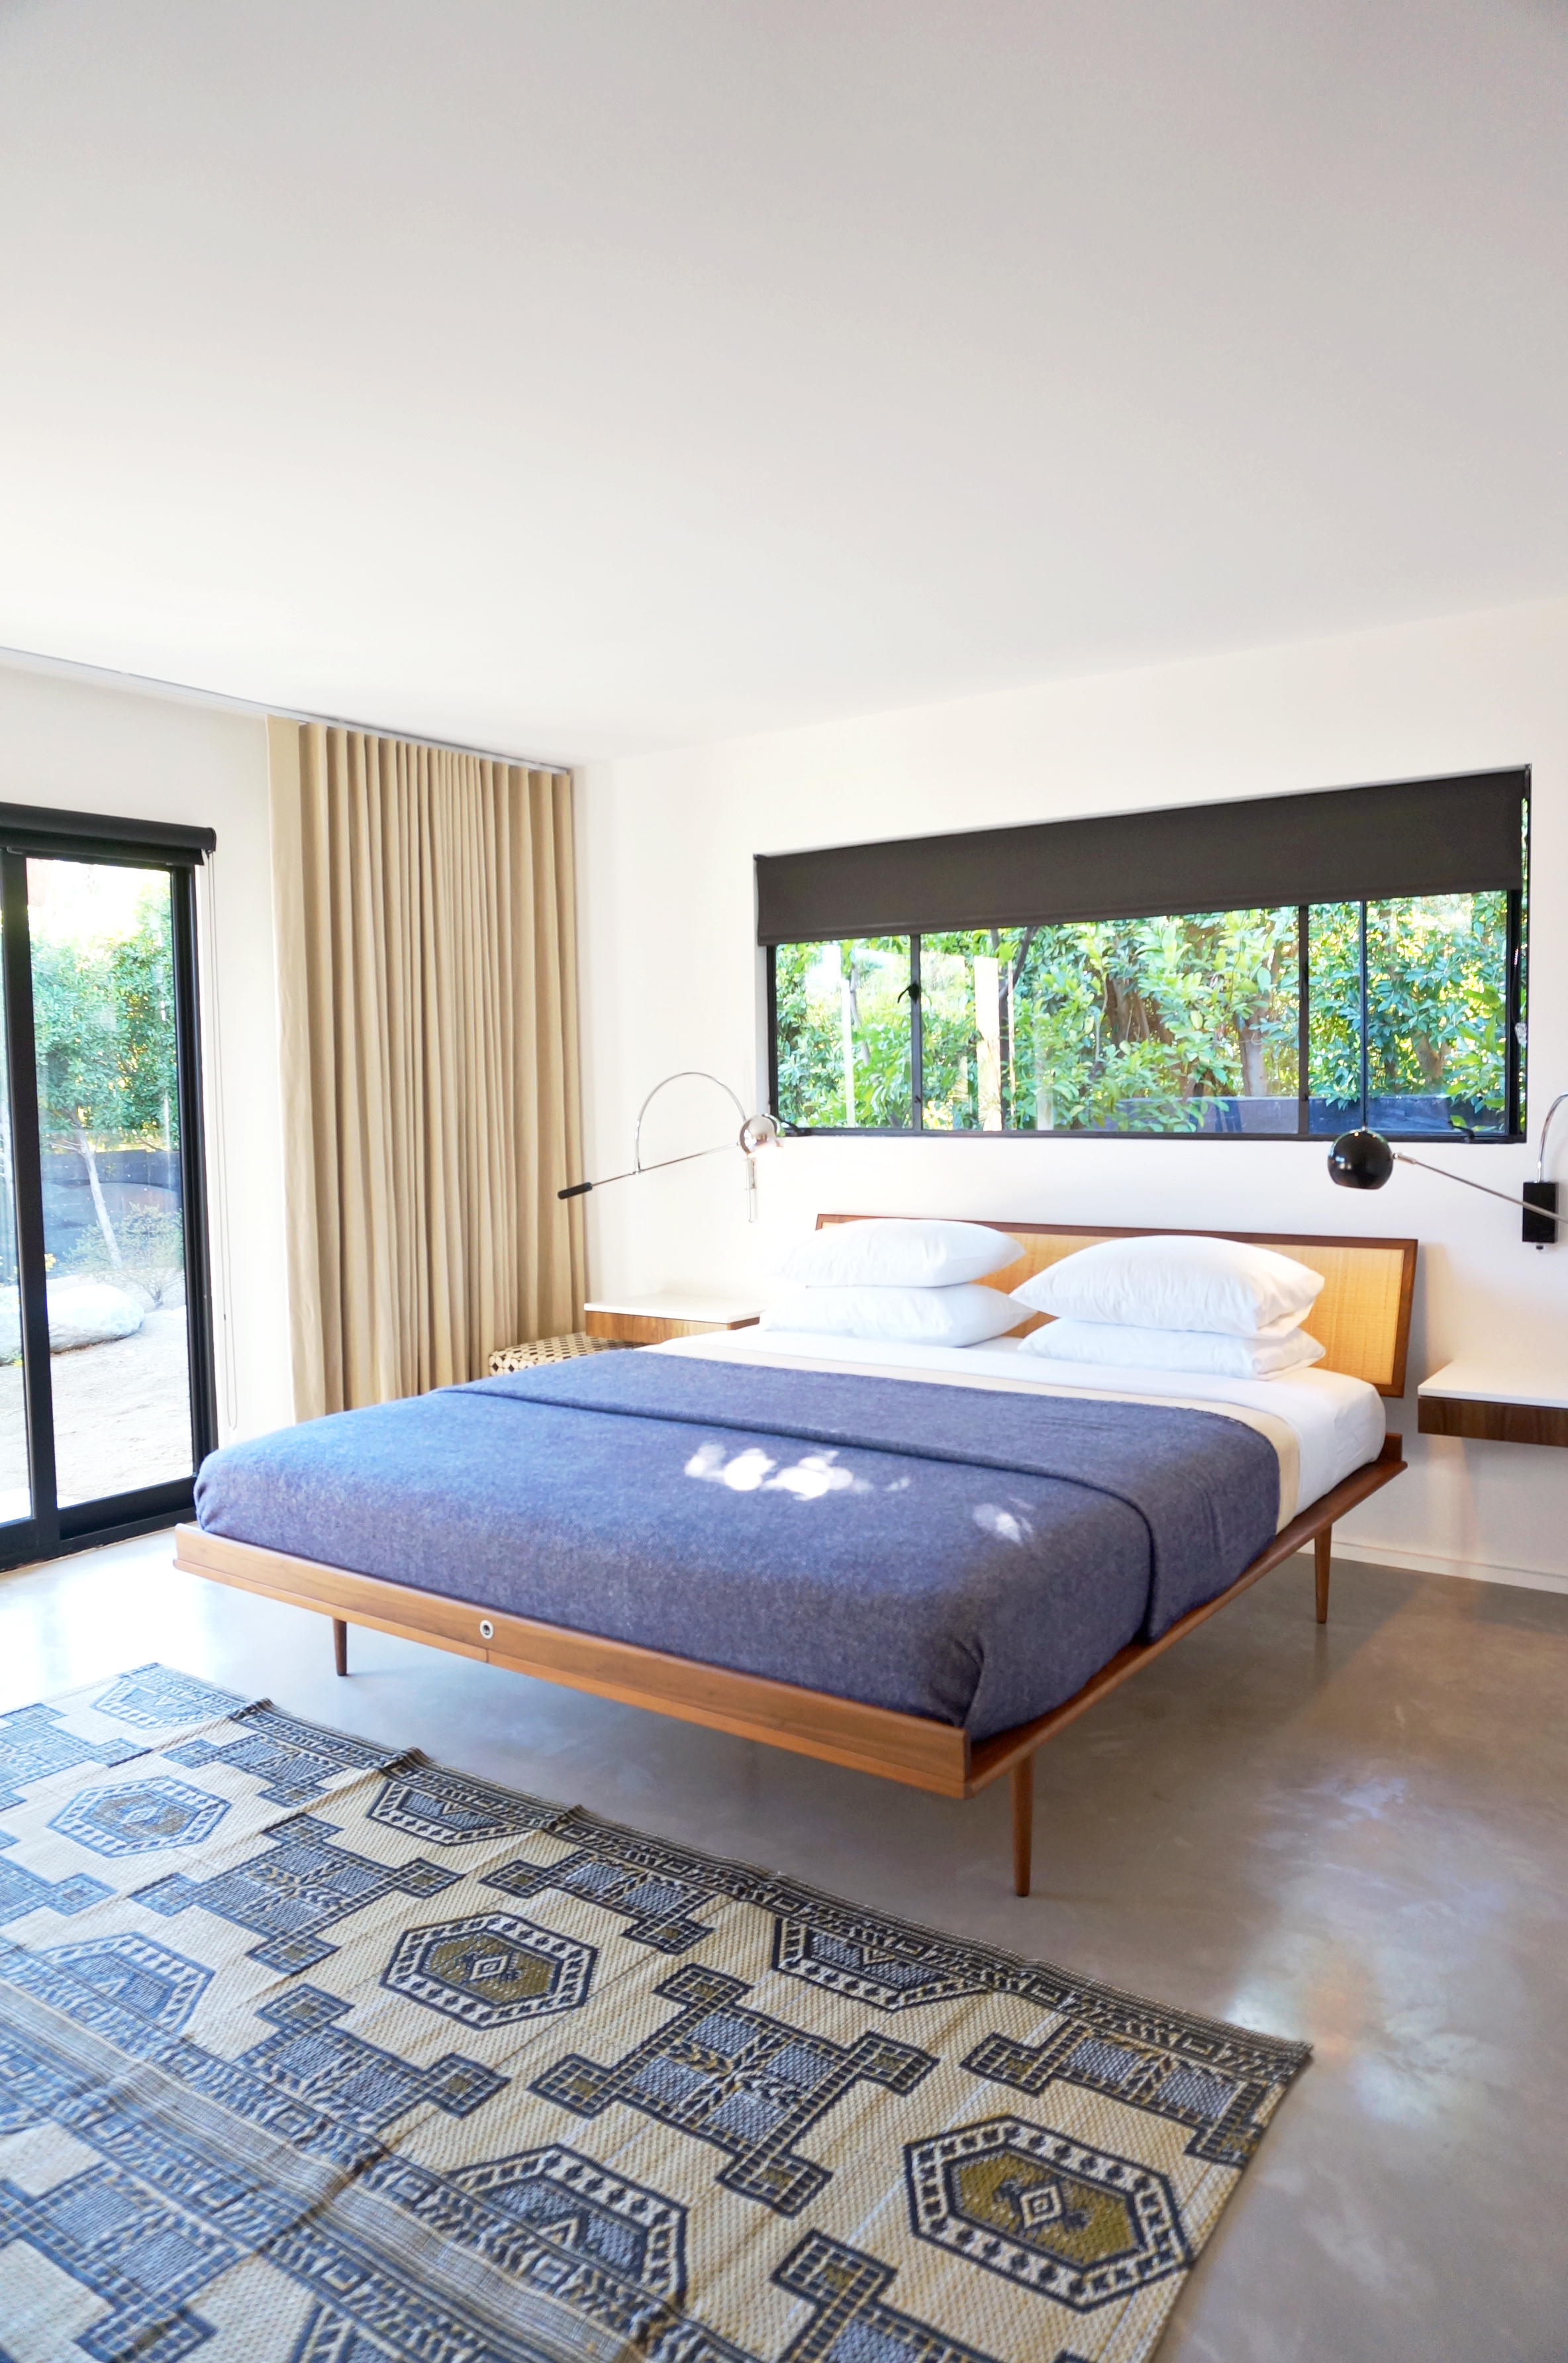 This room on the Signature House Tour felt a bit more modern than mid-century. Loved the bedframe!